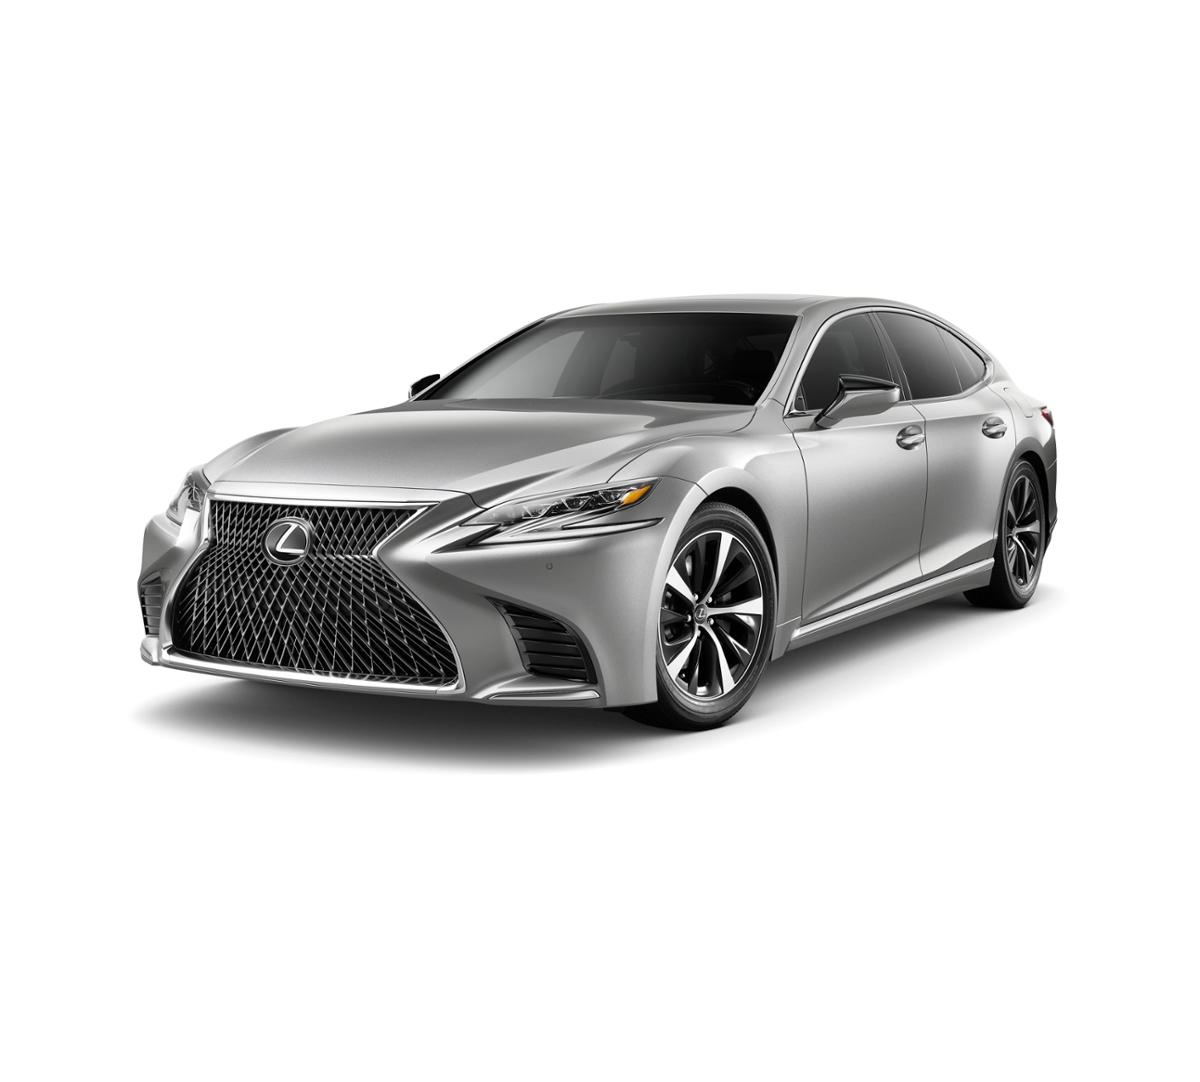 gs used atlanta detail line luxury awd sedan at crafted lexus